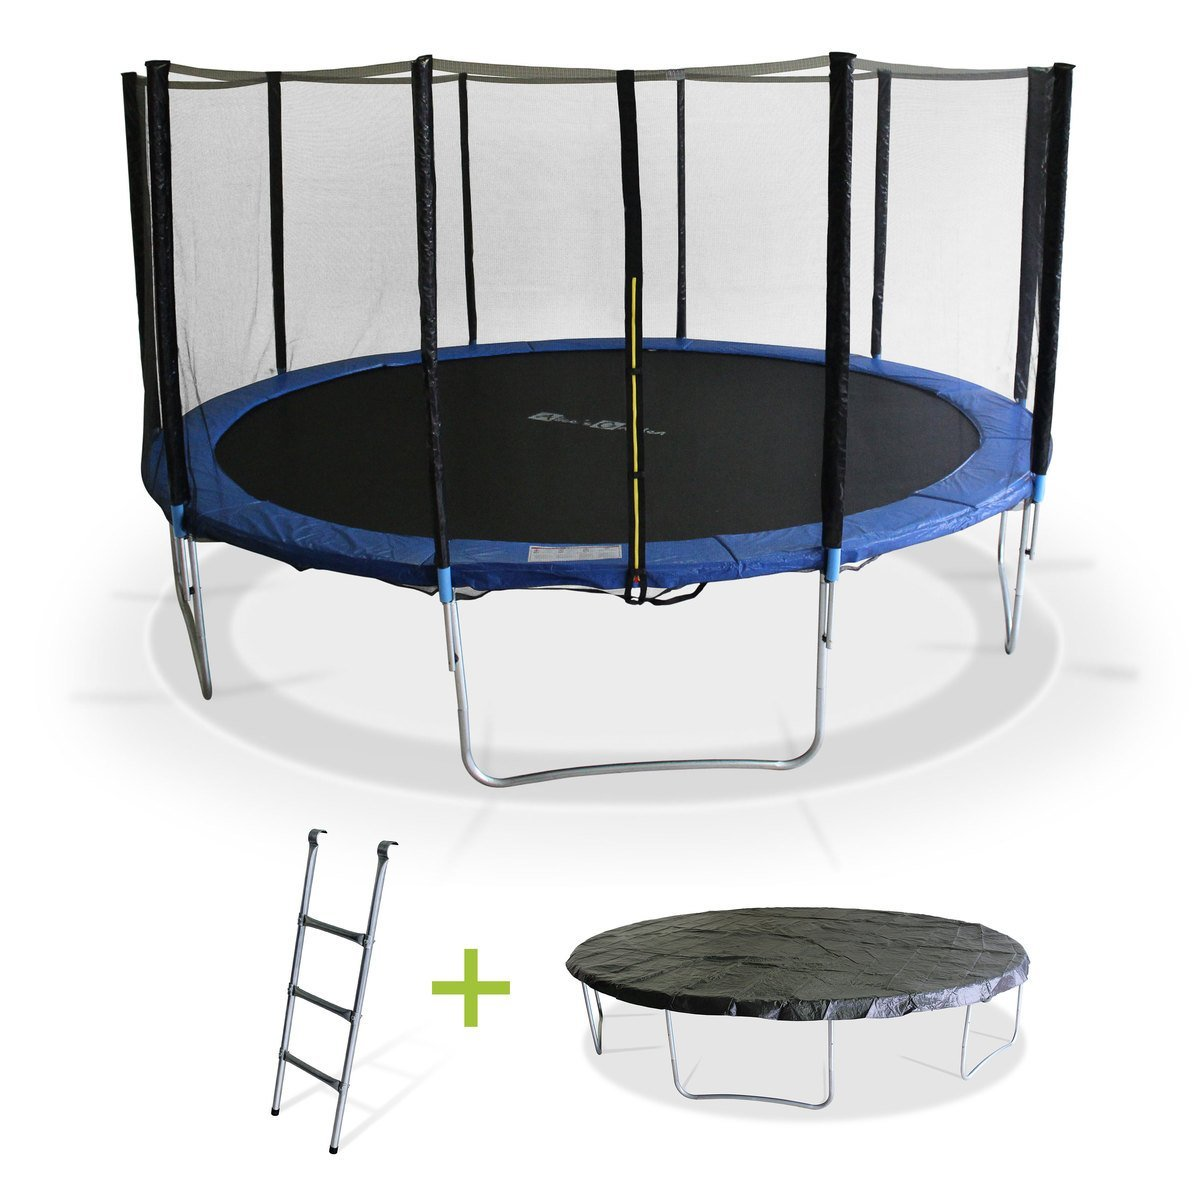 notre test complet du trampoline jupiter xxl de alice 39 s garden. Black Bedroom Furniture Sets. Home Design Ideas